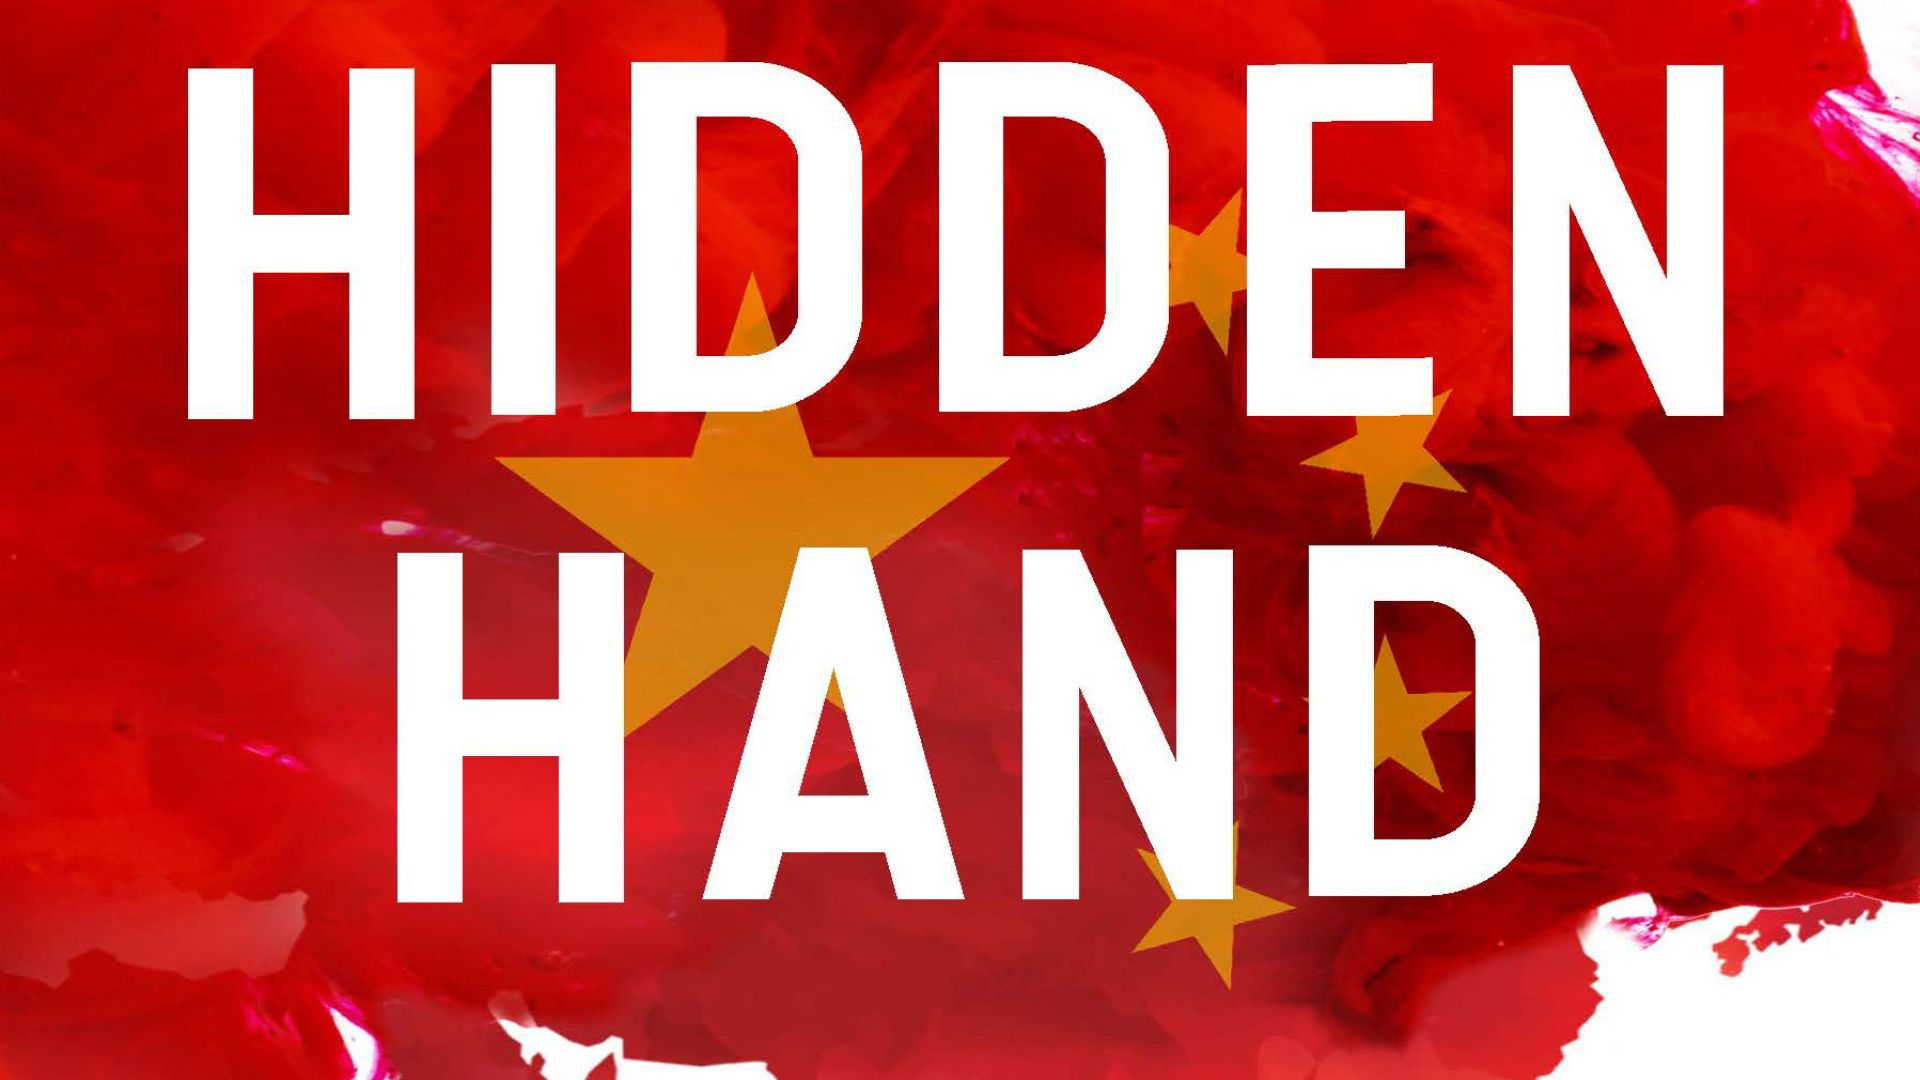 New book 'Hidden Hand' describes China's threat to democracy